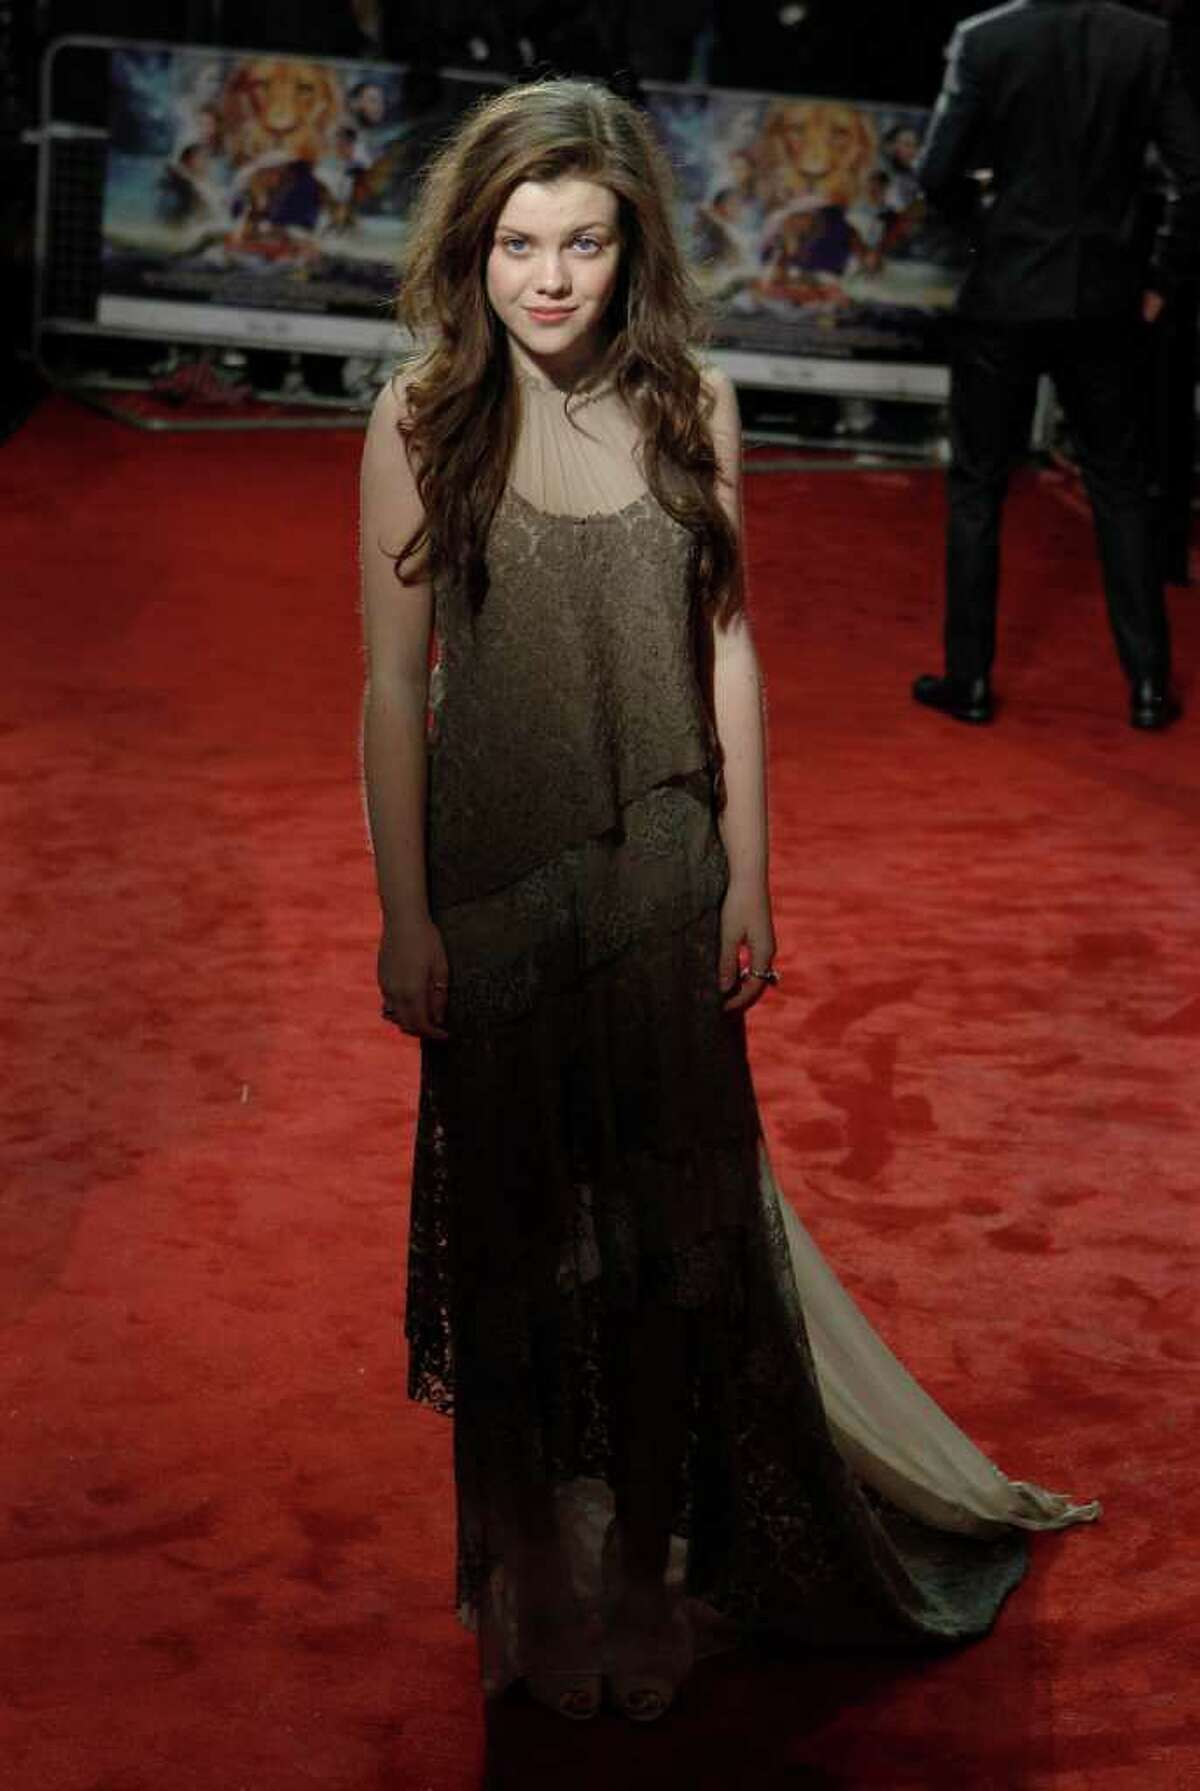 British actress Georgie Henley arrives for the World premiere of' The Chronicles of Narnia: Voyage of the Dawn Treader', at a cinema in Leicester Square, London, Tuesday, Nov. 30, 2010. (AP Photo/Joel Ryan)